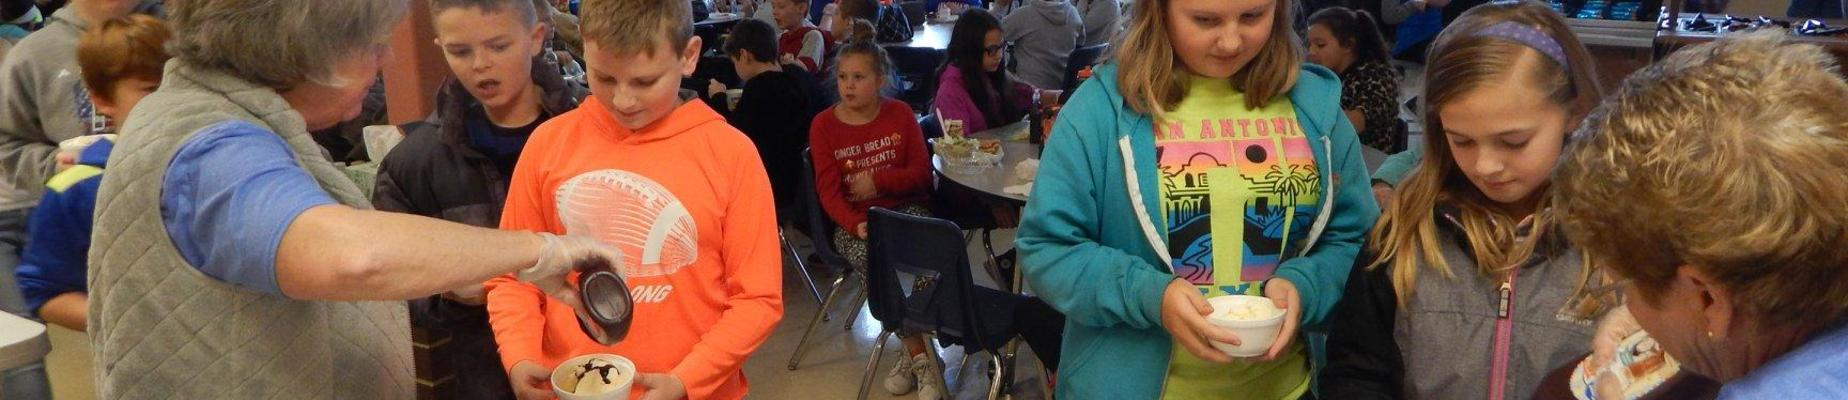 Optimist Club treats IS students to ice cream